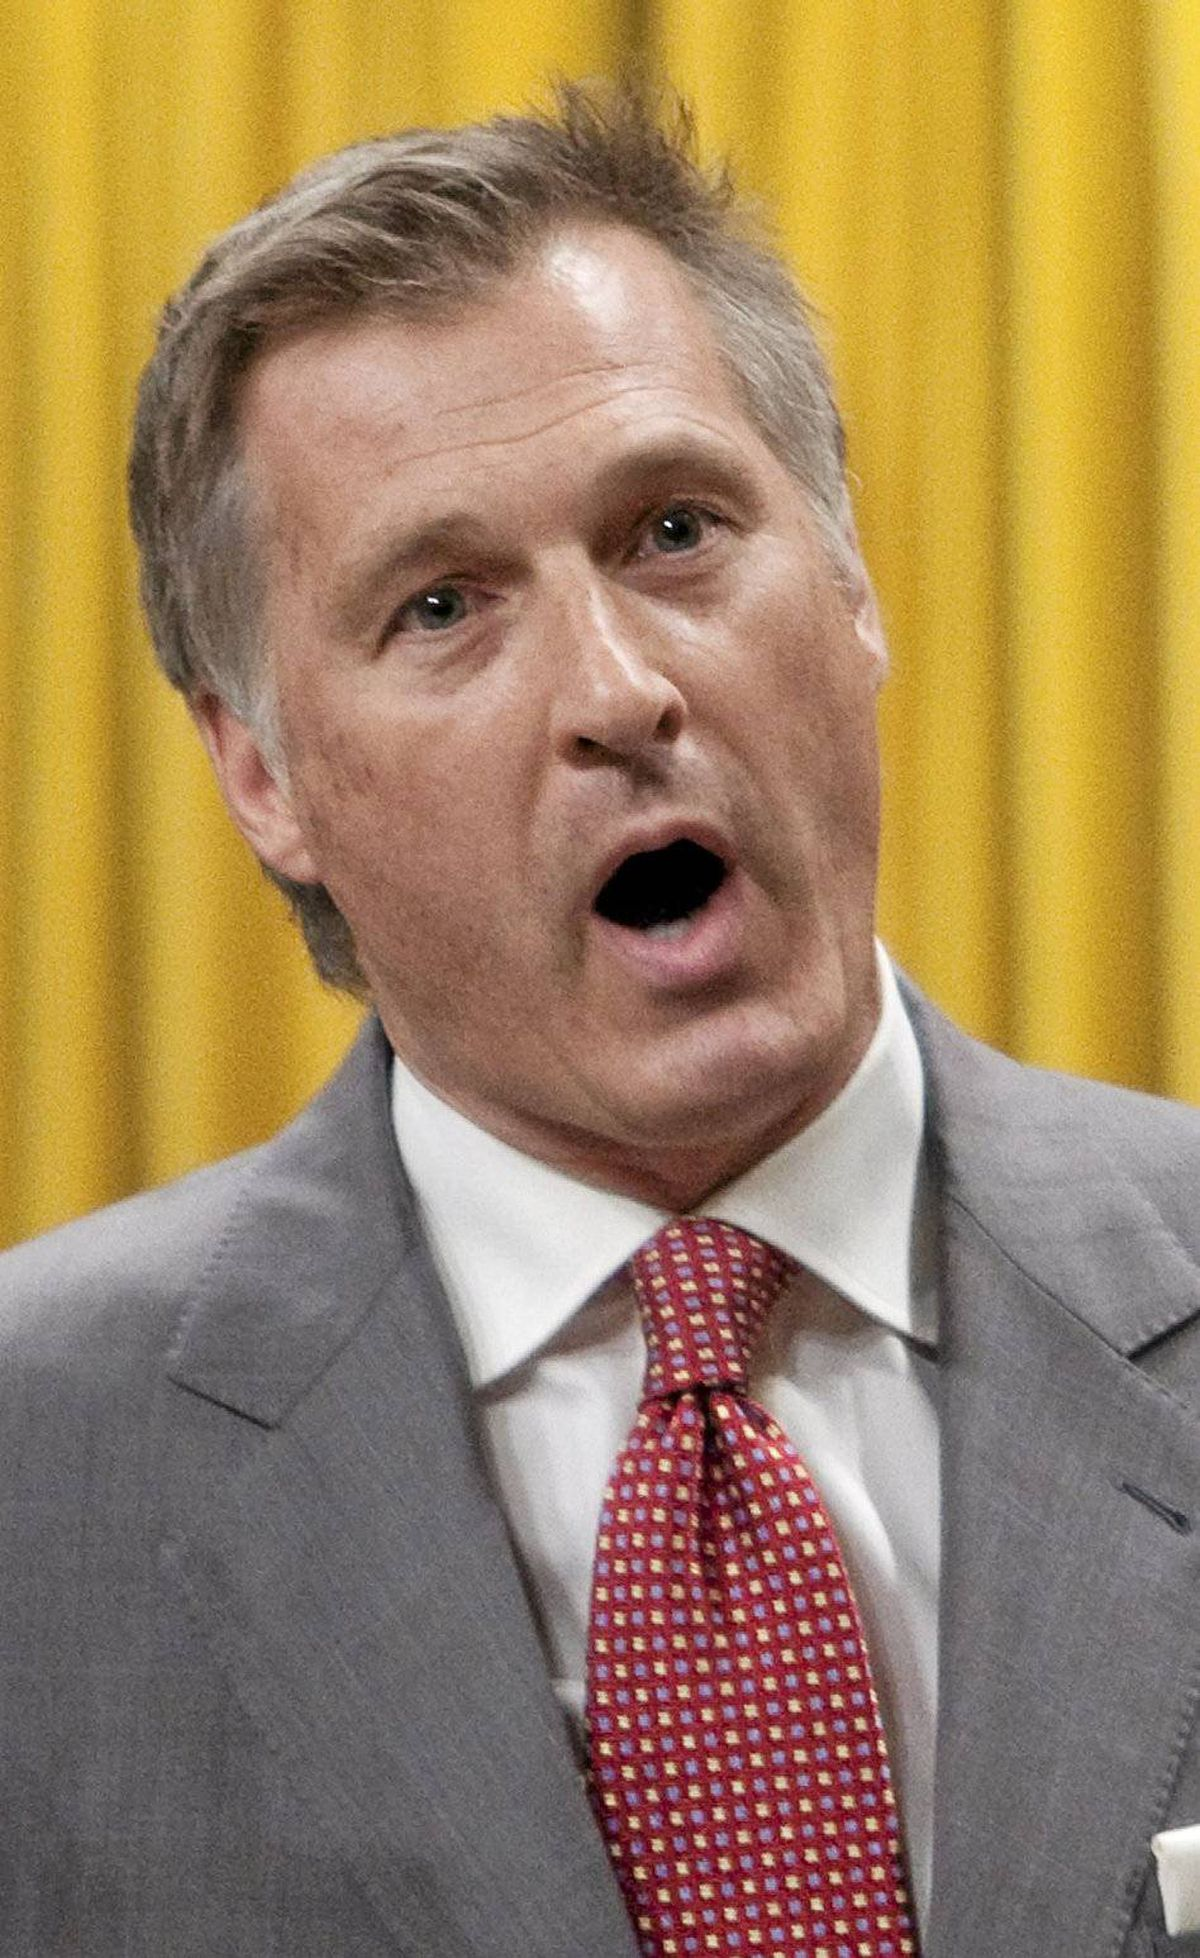 'WILD CARDS AND GIANT KILLERS' MAXIME BERNIER: Dumped from cabinet in 2008 after leaving NATO documents at his girlfriend's house, this Quebec MP remains hugely popular. To rebuild Quebec support, Mr. Harper will have to seriously consider returning him to cabinet.